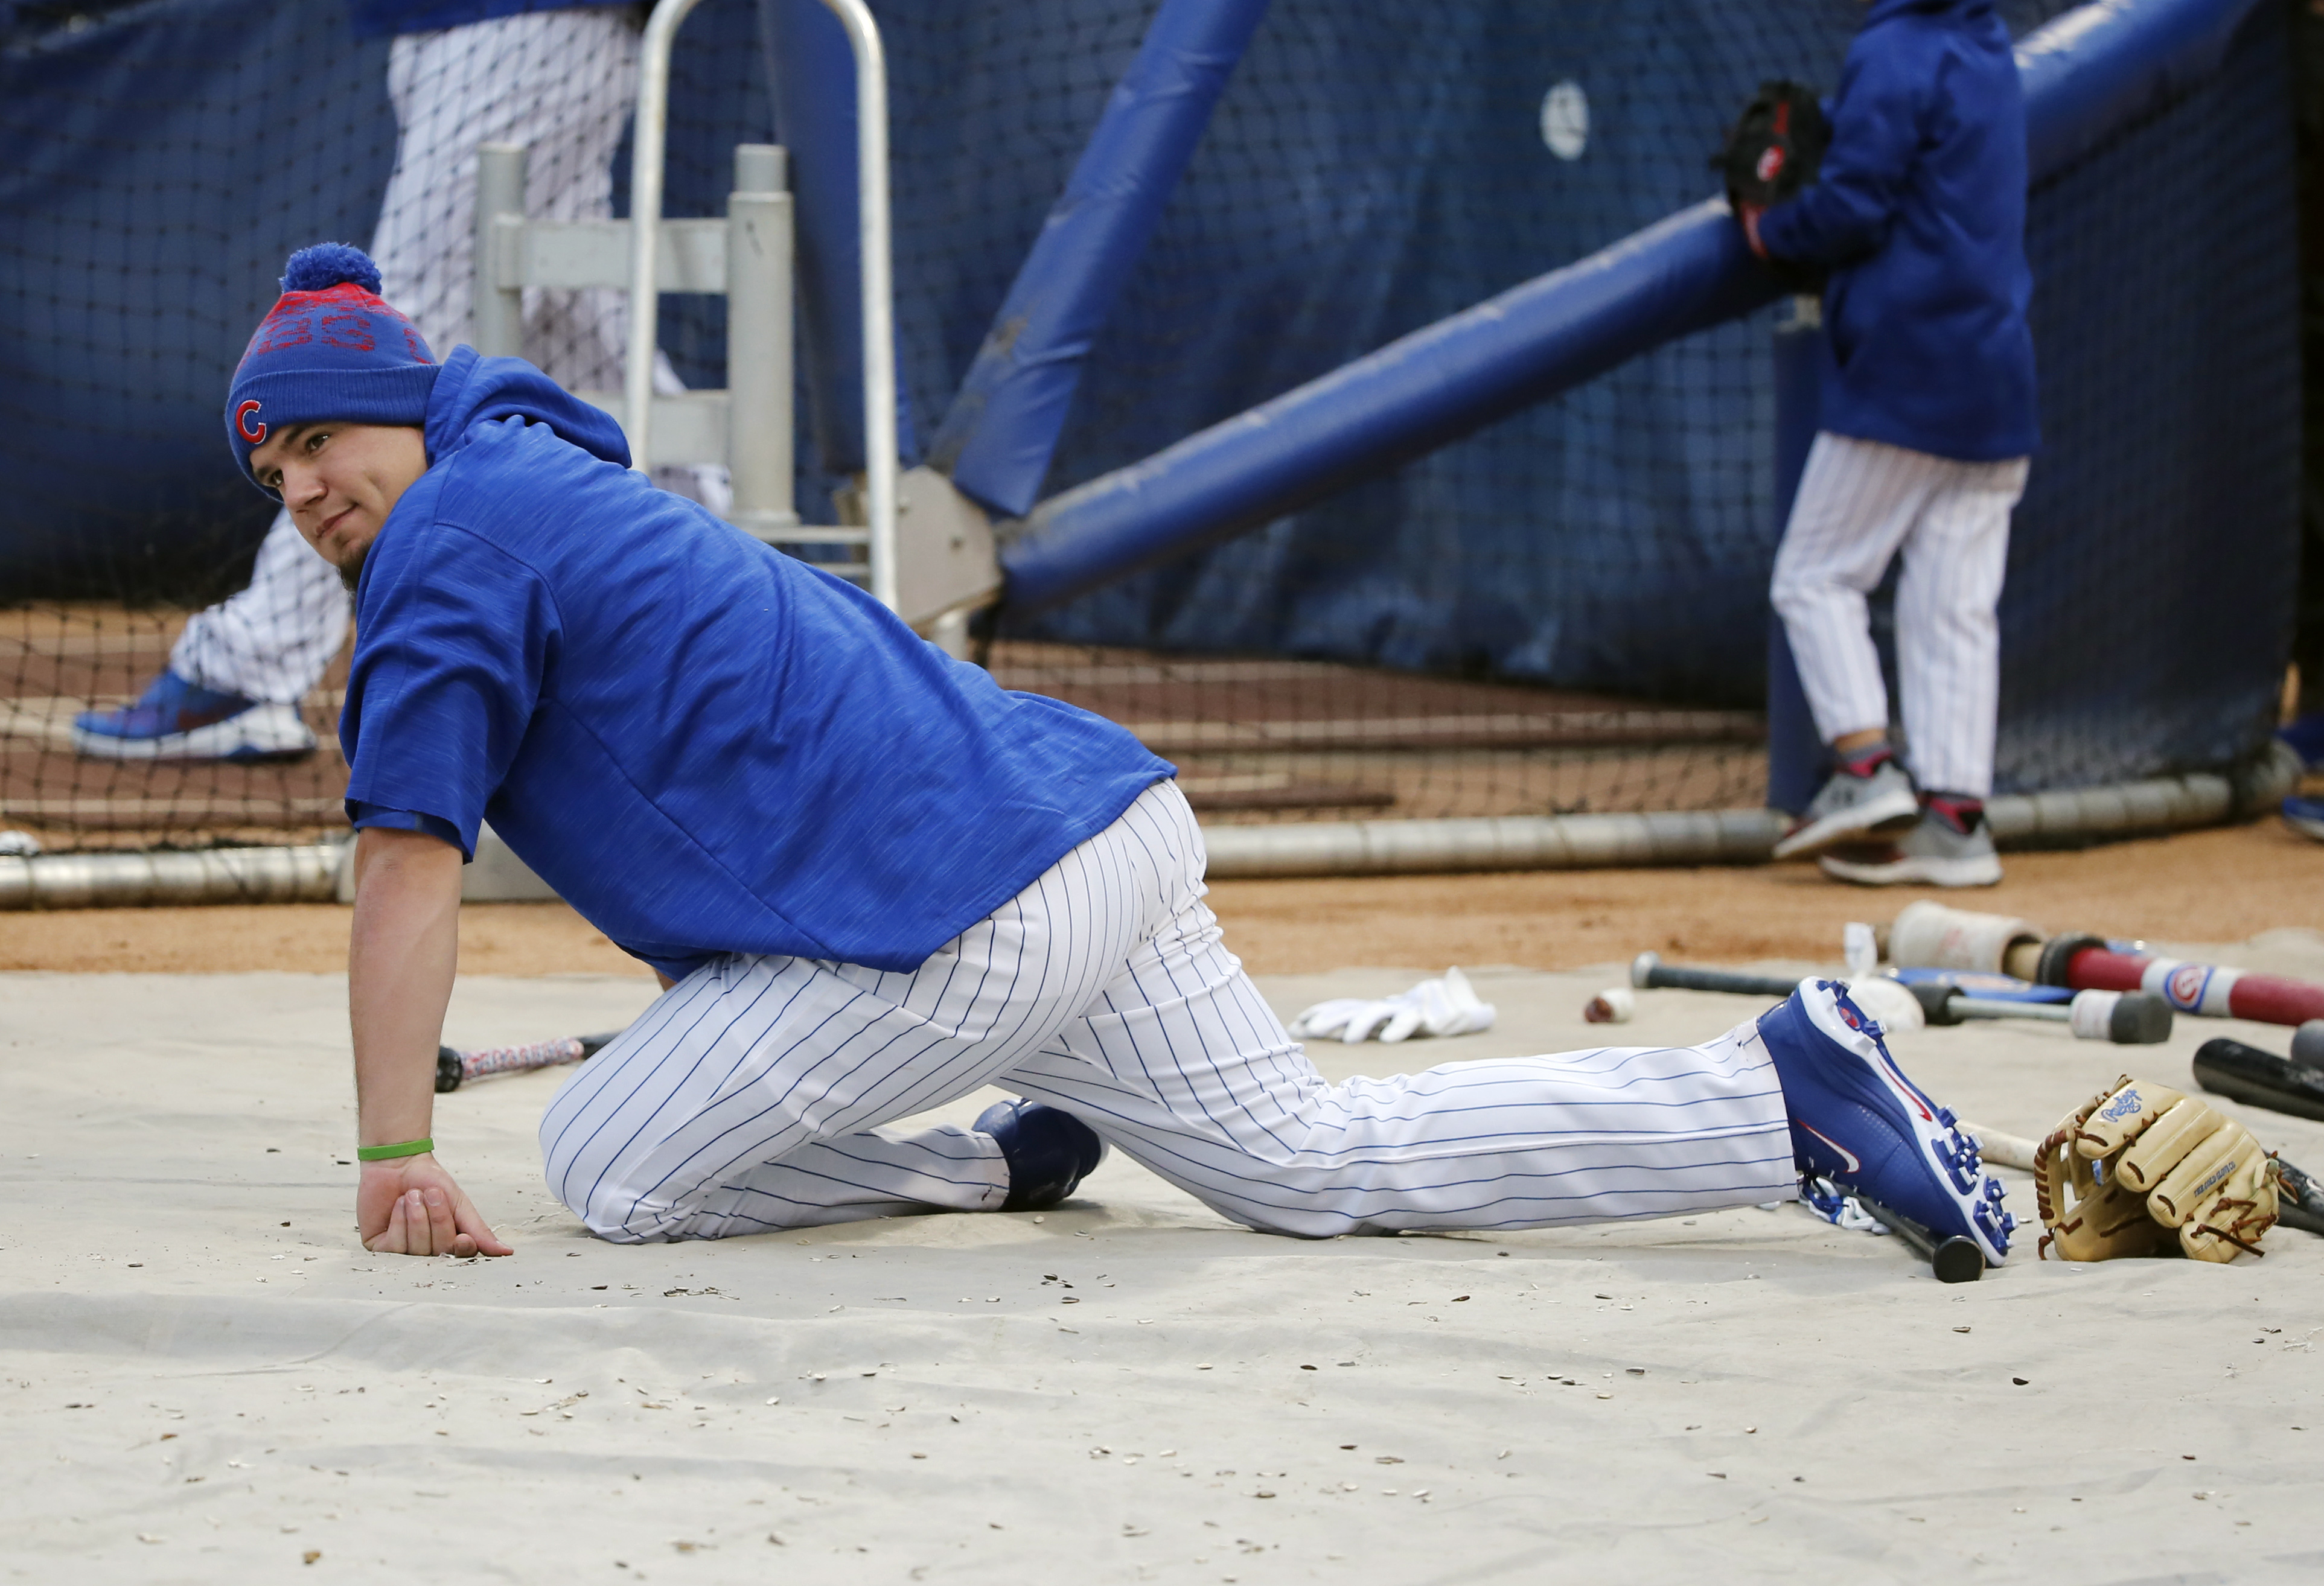 Chicago Cubs' Kyle Schwarber stretches as he works out for Friday's Game 3 of the Major League Baseball World Series against the Cleveland Indians, Thursday, Oct. 27, 2016, in Chicago. (AP Photo/Charles Rex Arbogast)